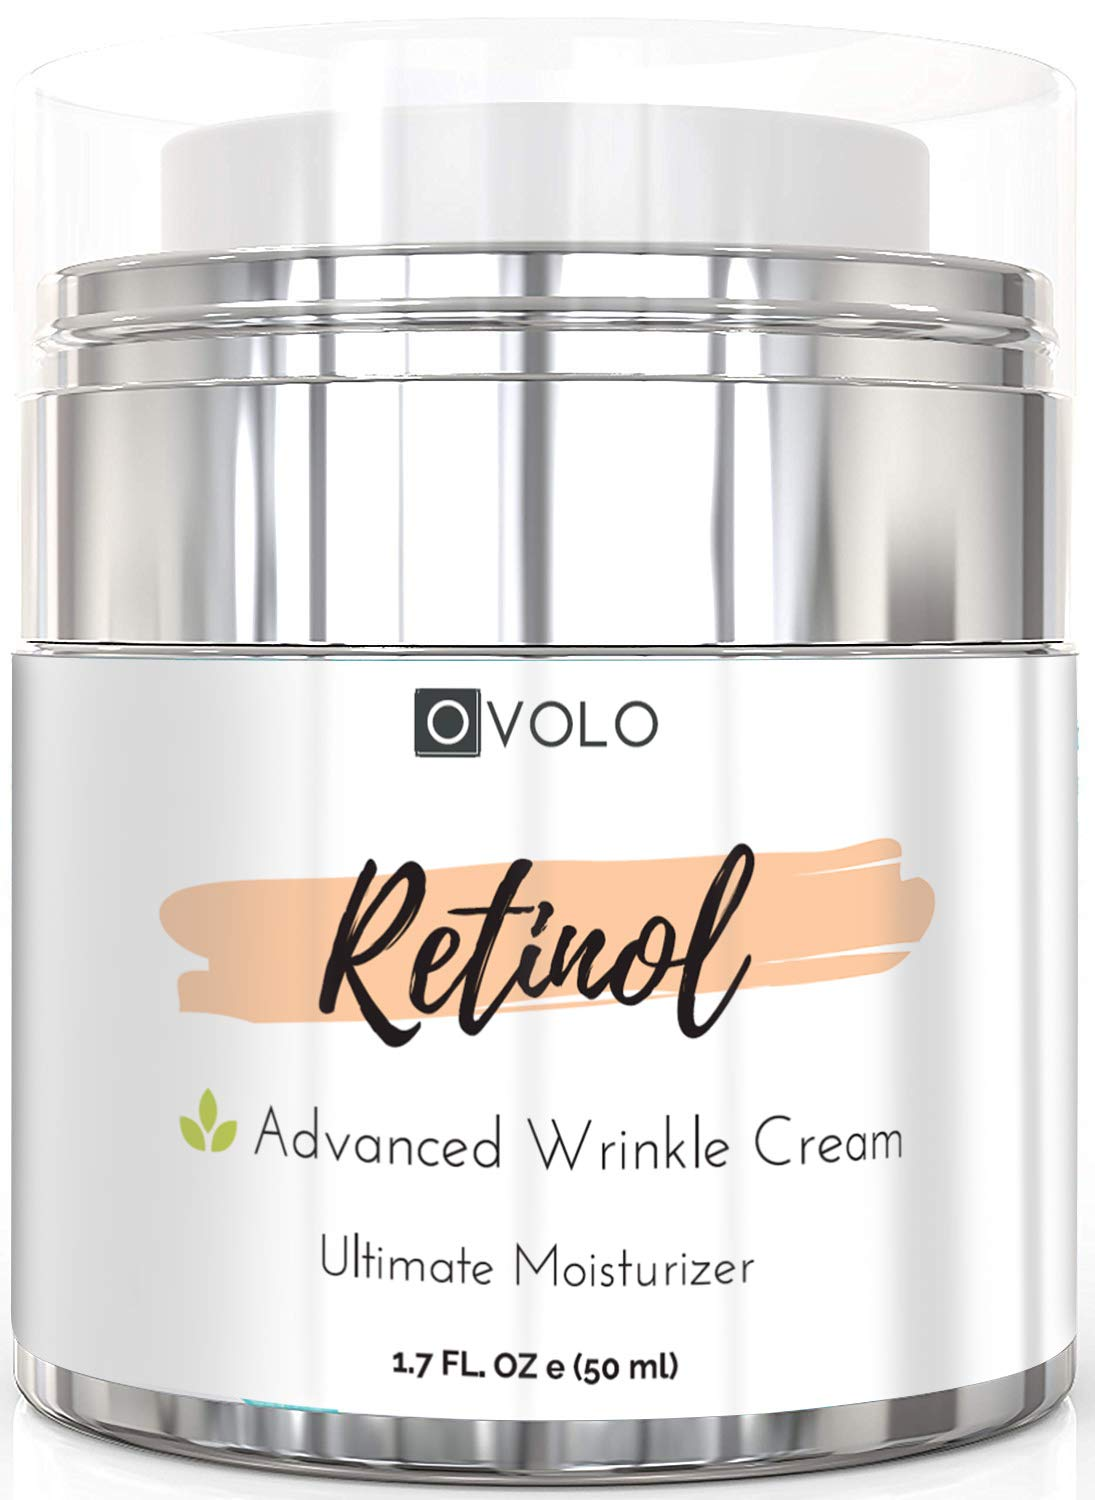 OVOLO Moisturizer Cream with Retinol for Face and Eye Area - BEST NEW 2019 Skin Care Option Formulated with Premium Ingredients (USA Made) - Anti Aging Rapid Wrinkle Repair Cream for Day and Night